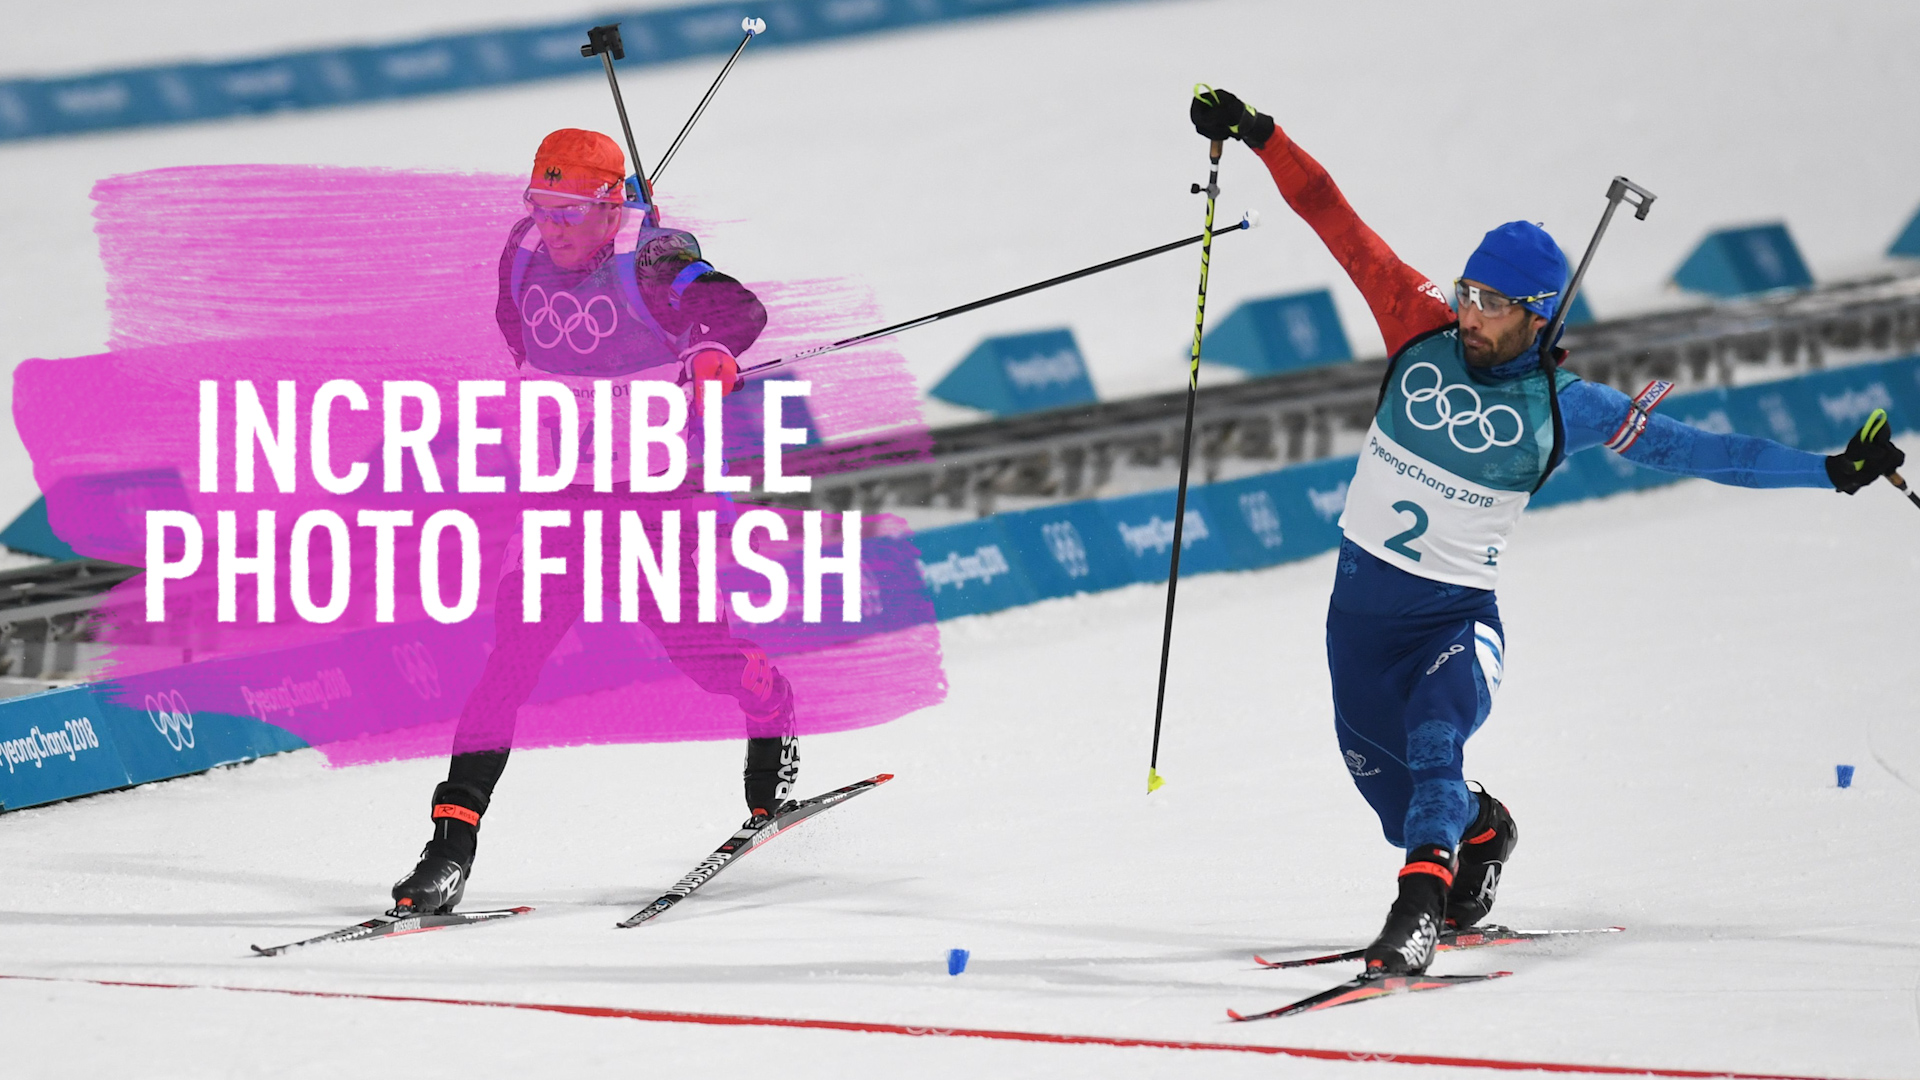 Winter Olympics: Biathlon produces 'One of the best finishes ever'